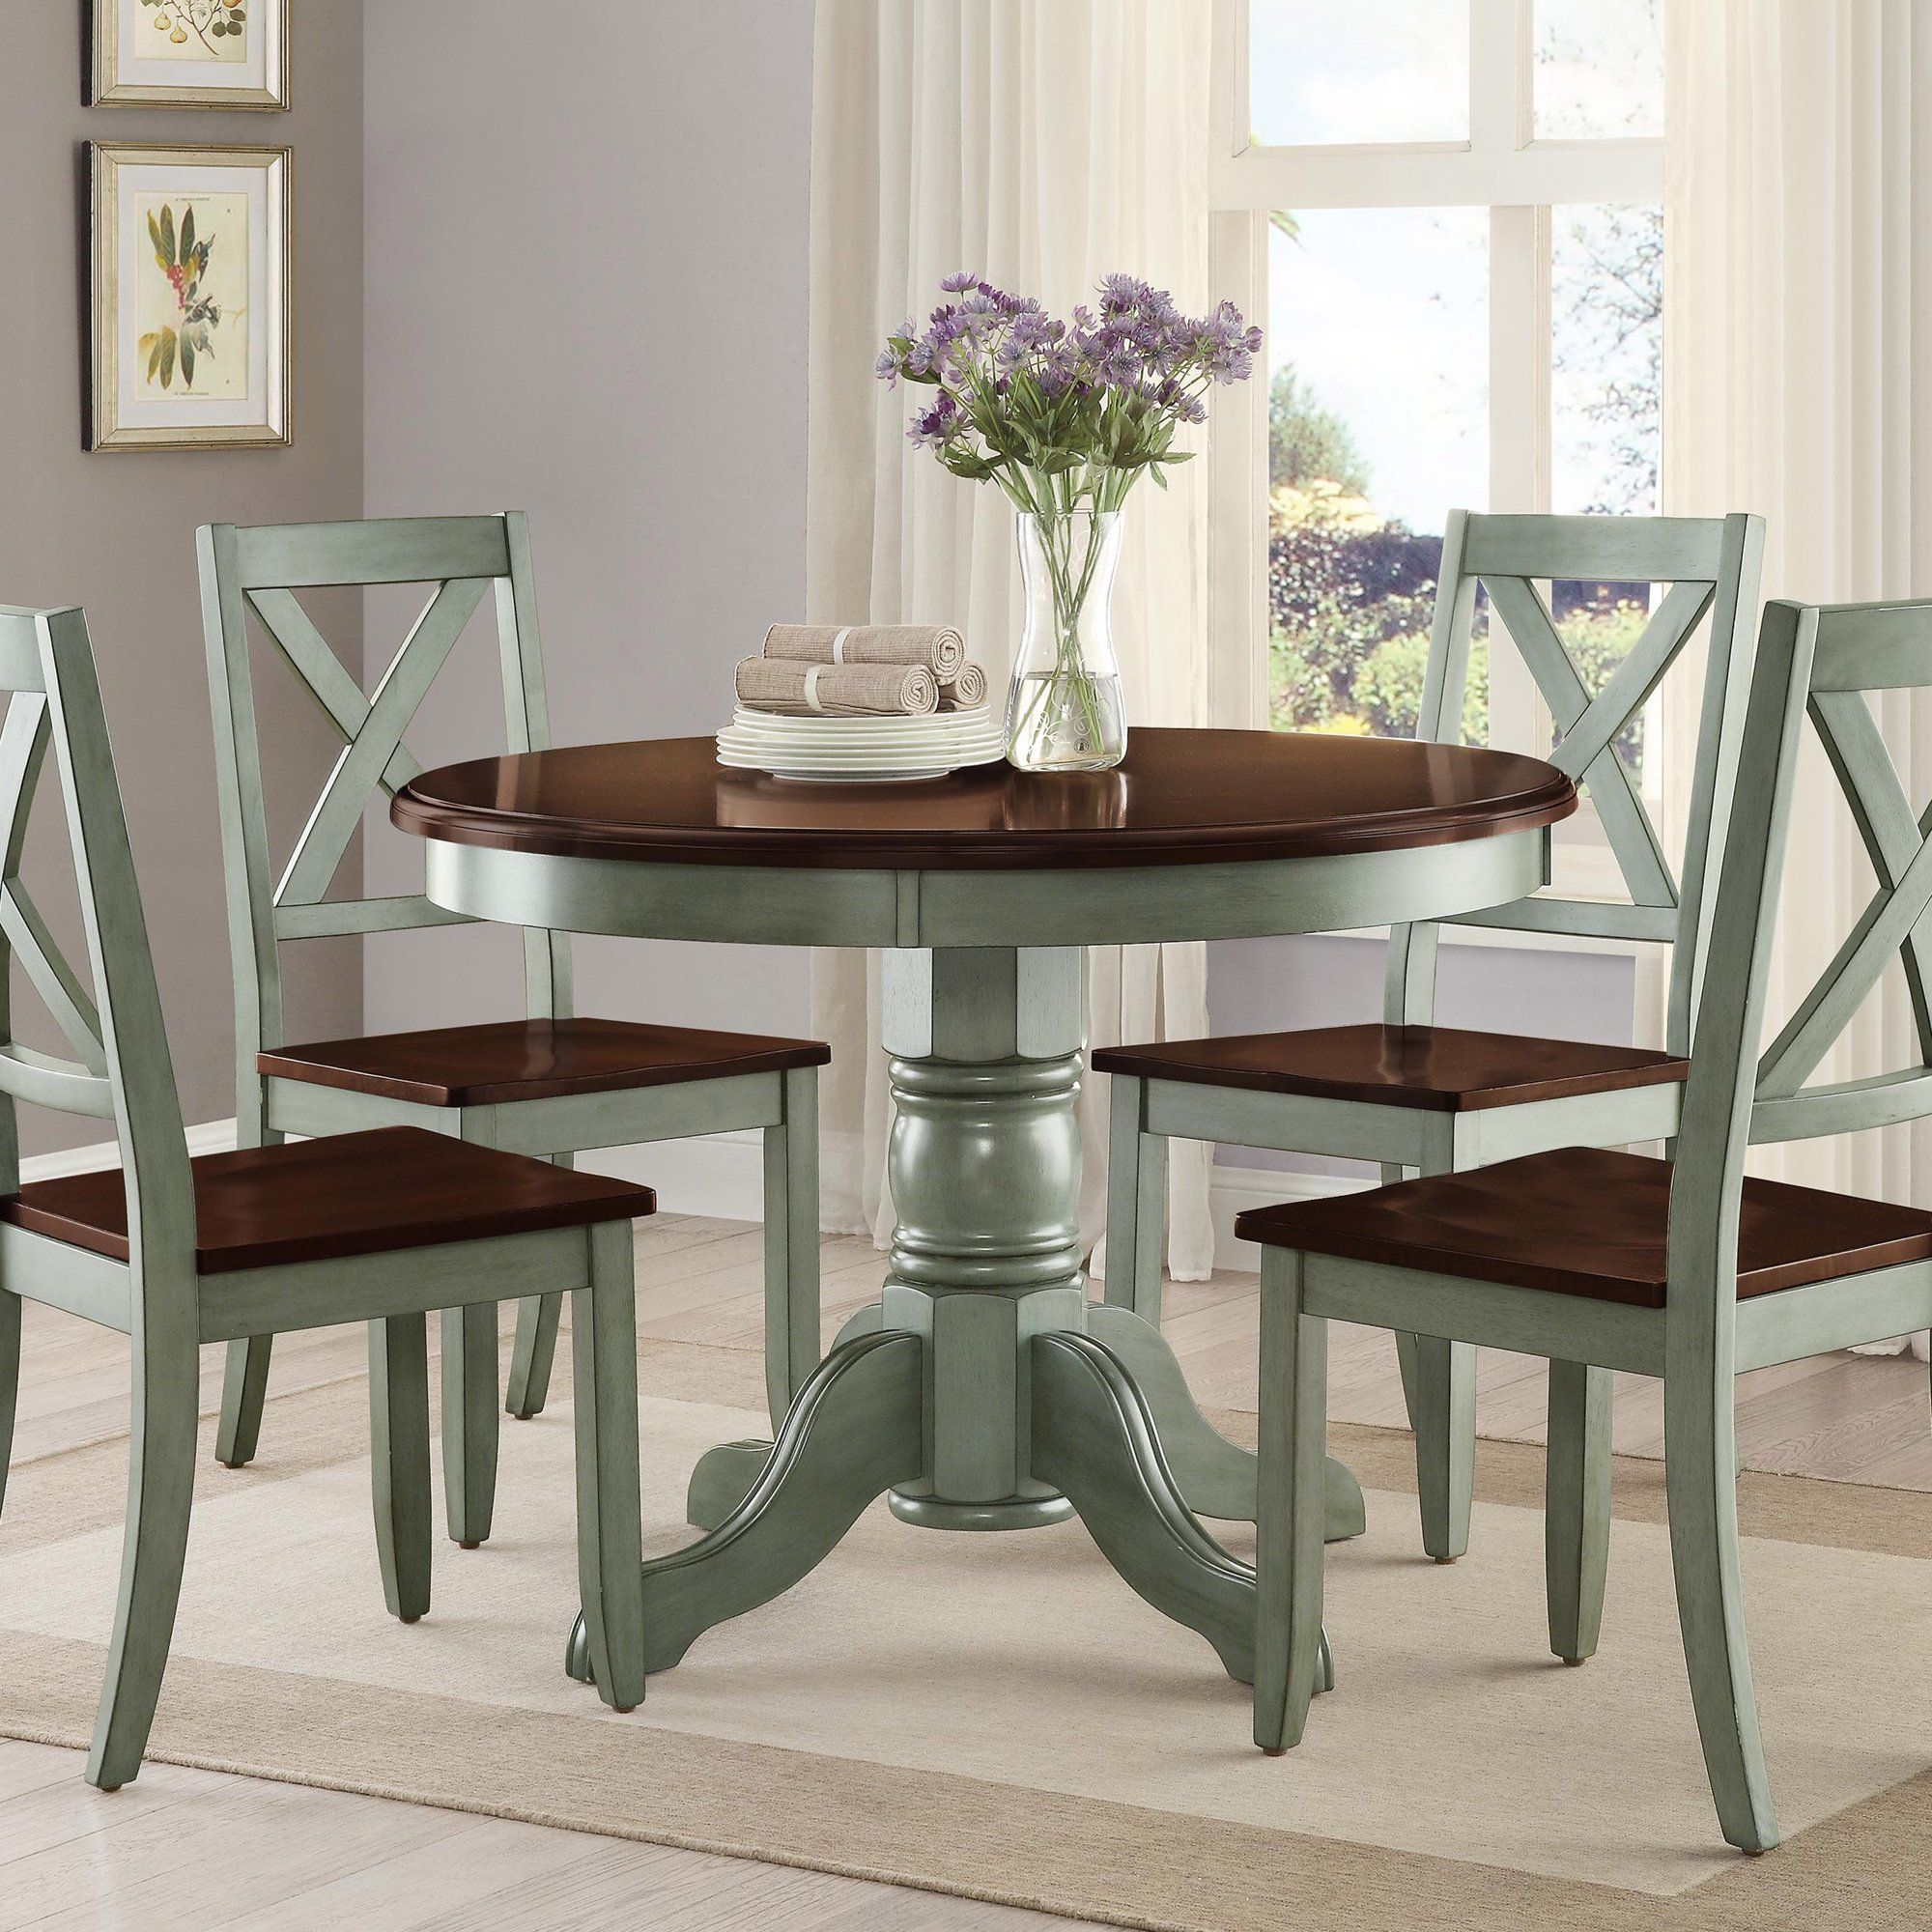 Better Homes And Gardens Cambridge Place Dining Table Multiple Finishes Walmart Com In 2020 Round Pedestal Dining Table Round Pedestal Dining Dining Table